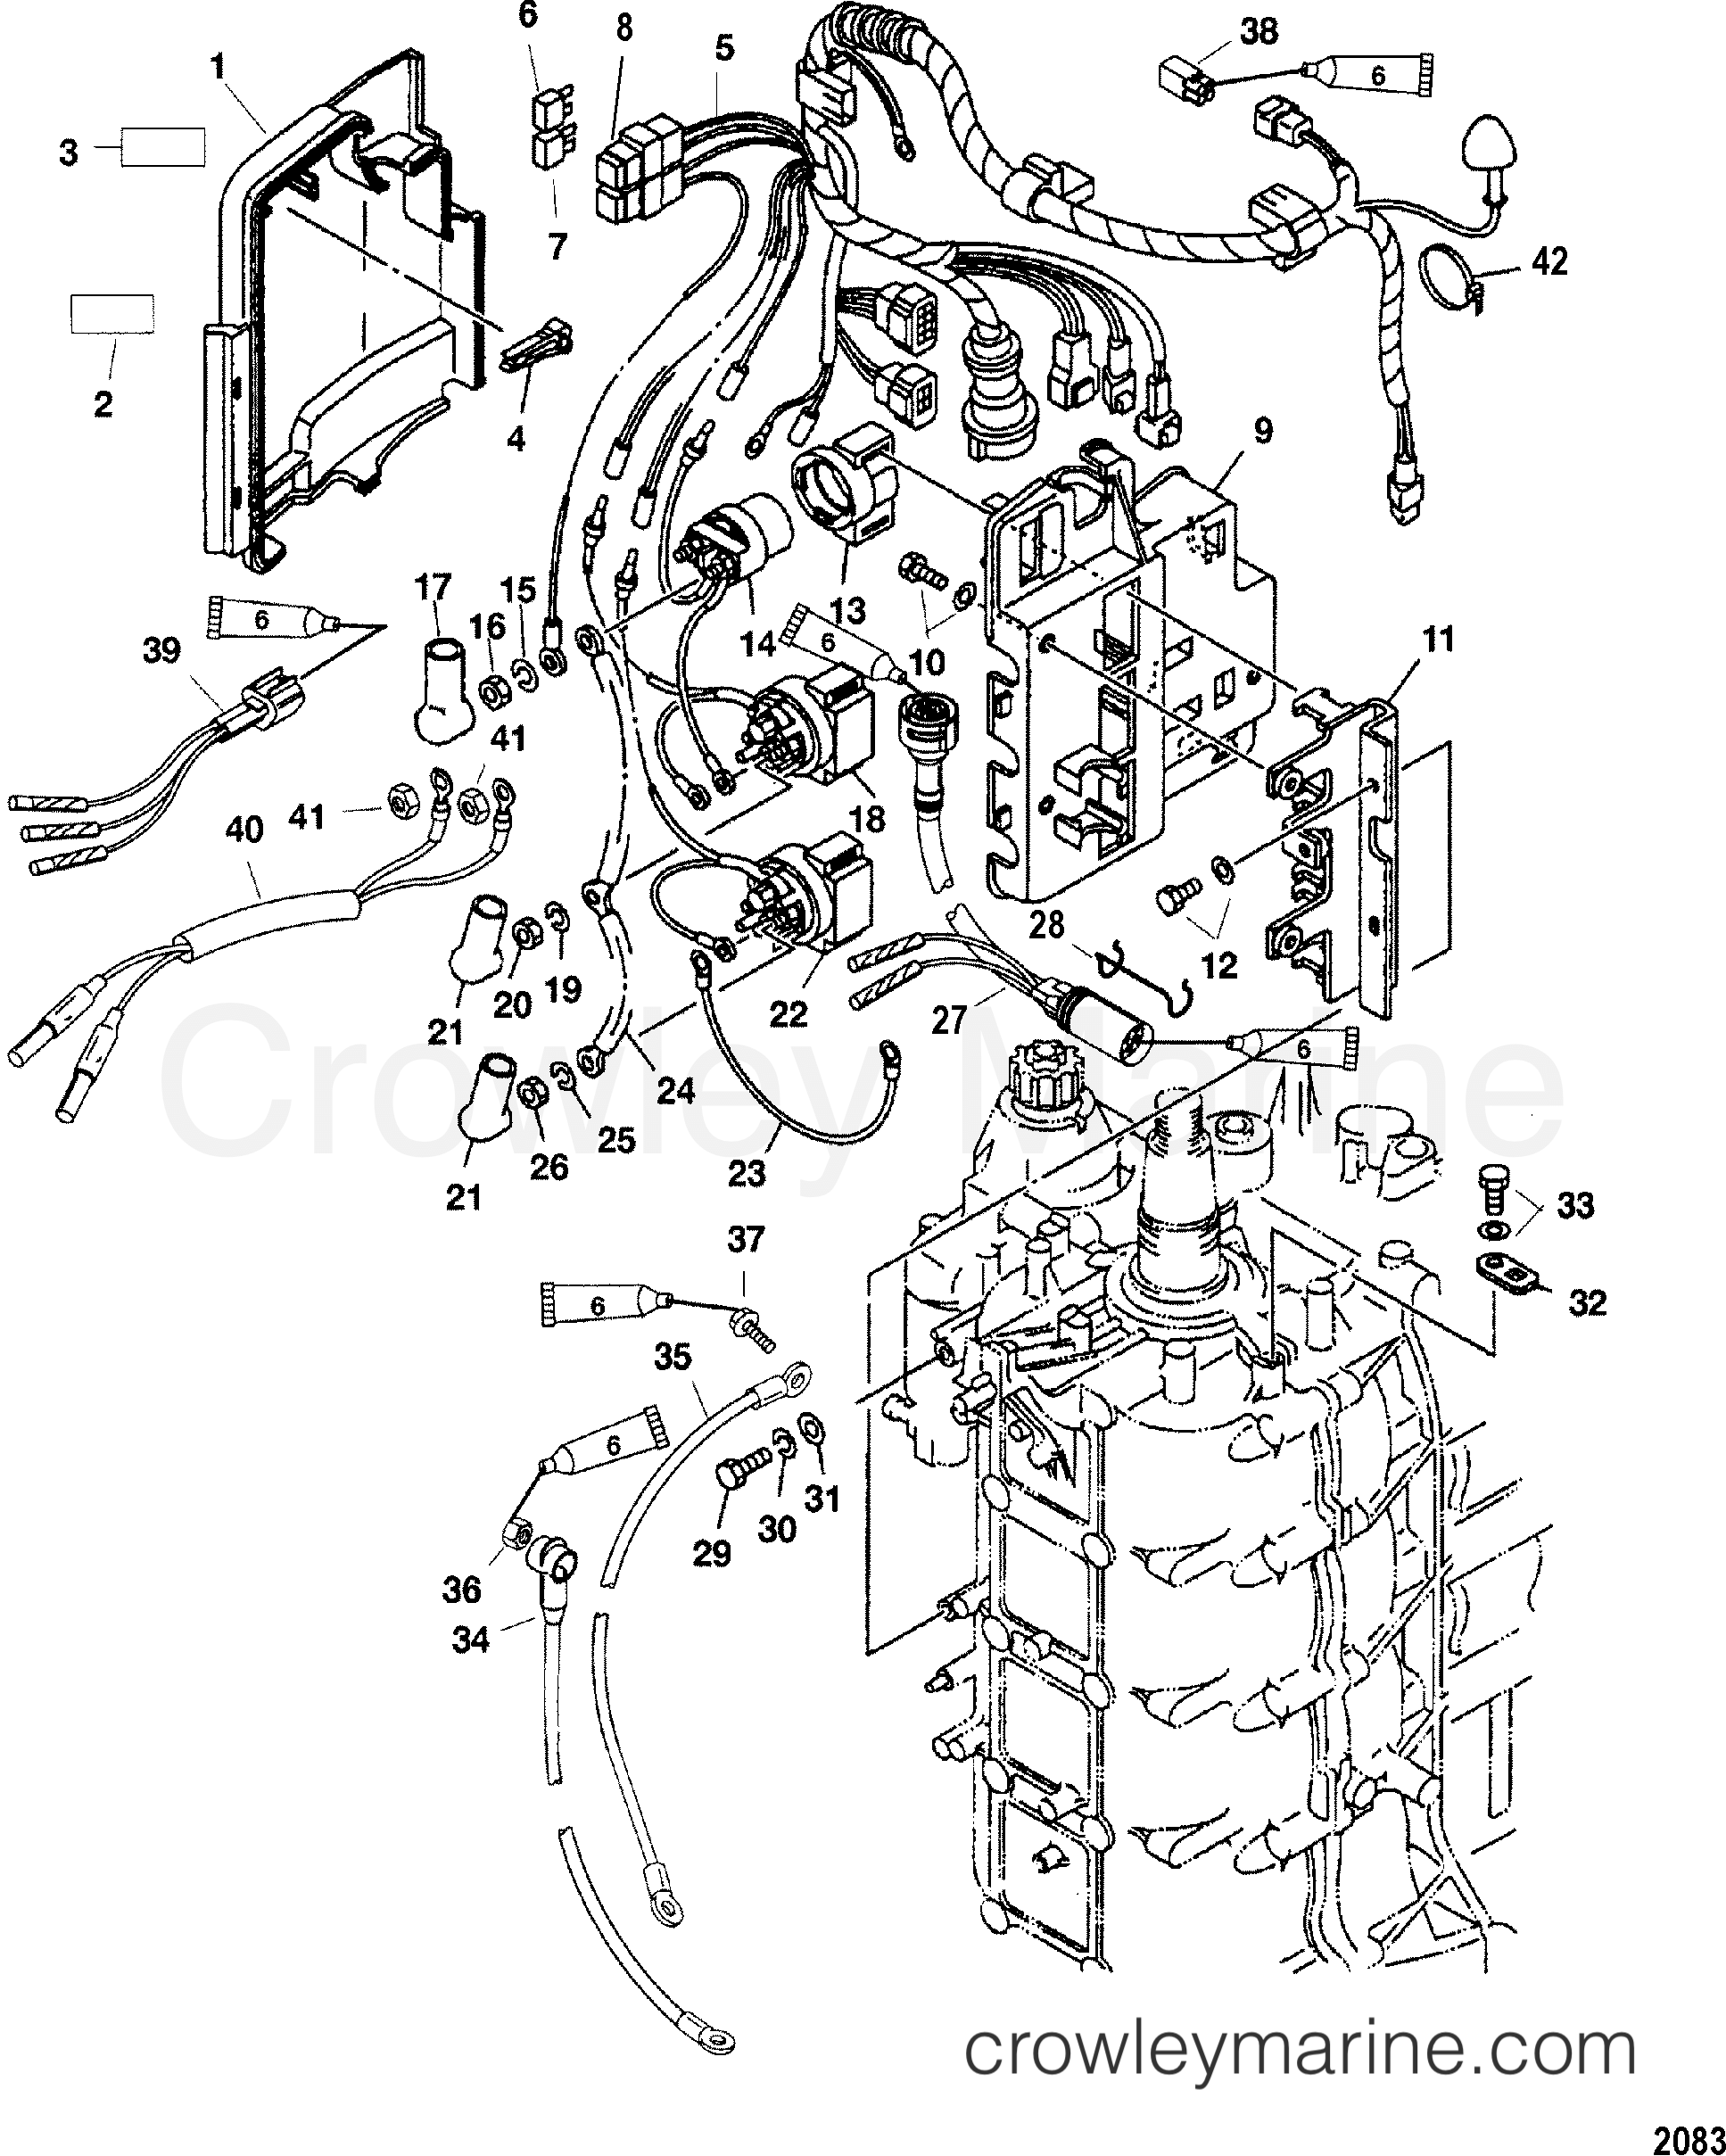 Mariner Outboard Wiring Diagram 2004 Expert Schematics 75 Mercury Optimax Electrical Components Elpt 4 7f75412rd Ignition Switch